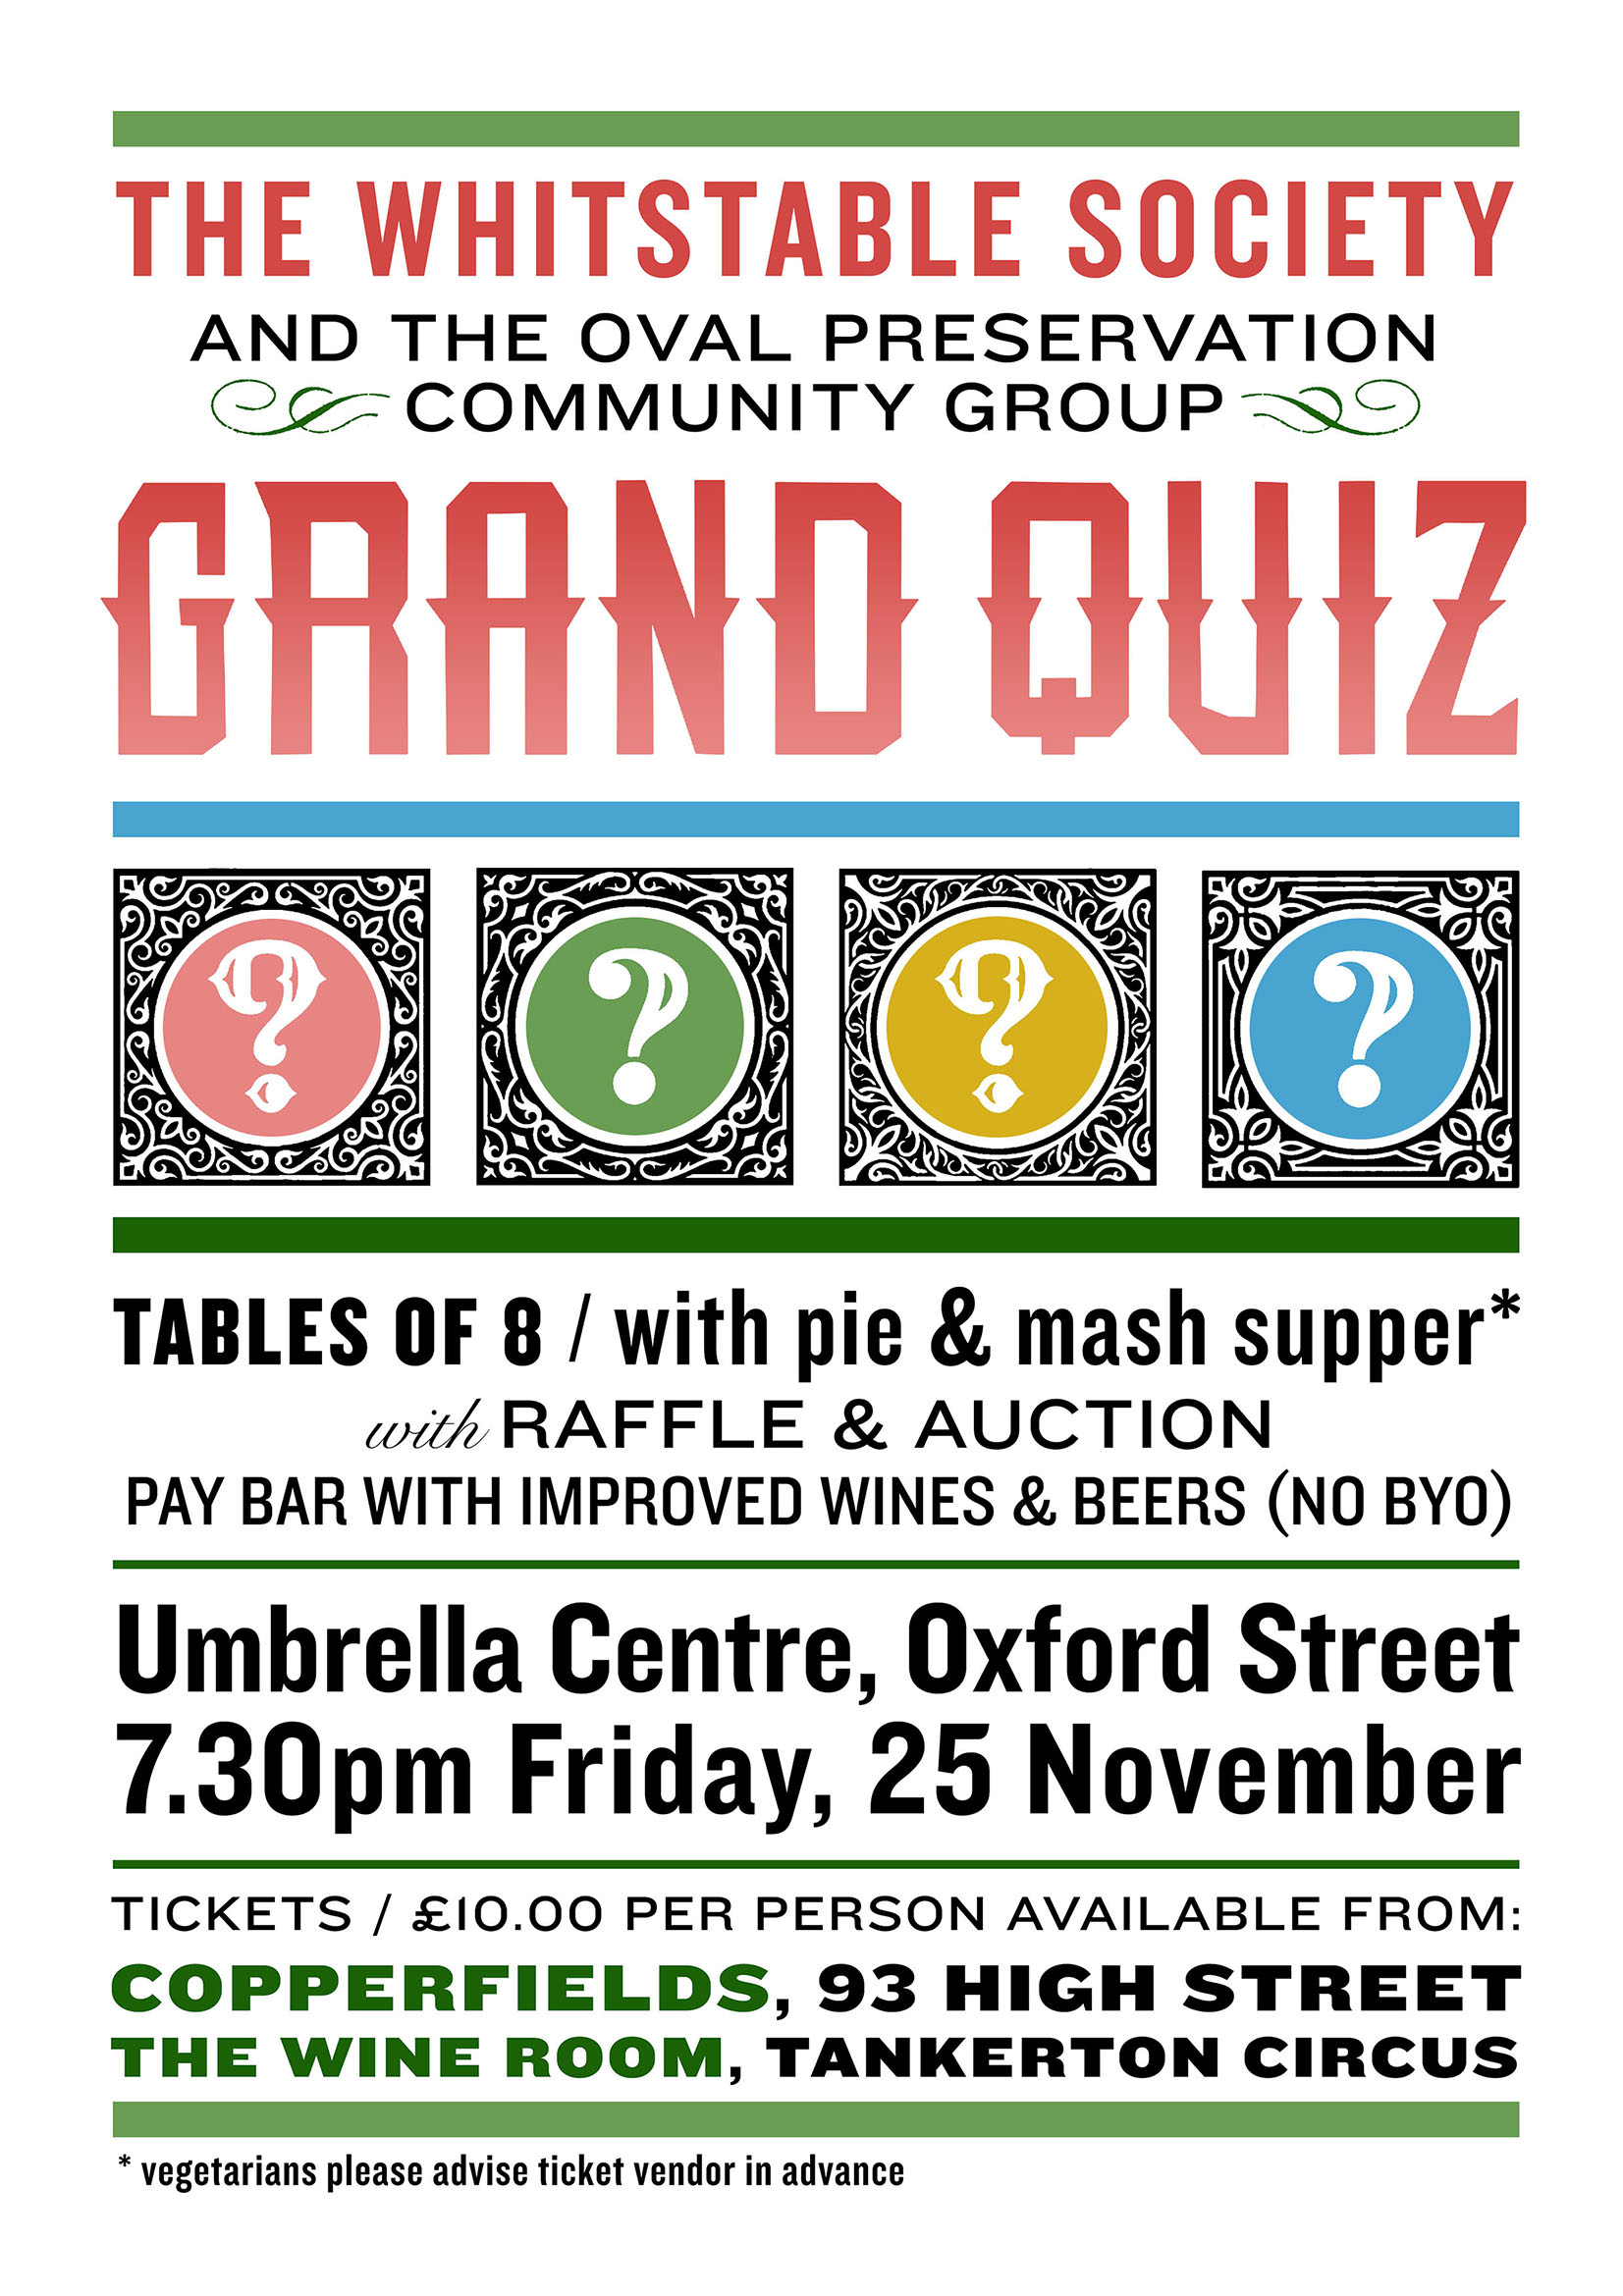 Whitstable Society and Oval Preservation Community Group Grand Quiz 25th November 2016